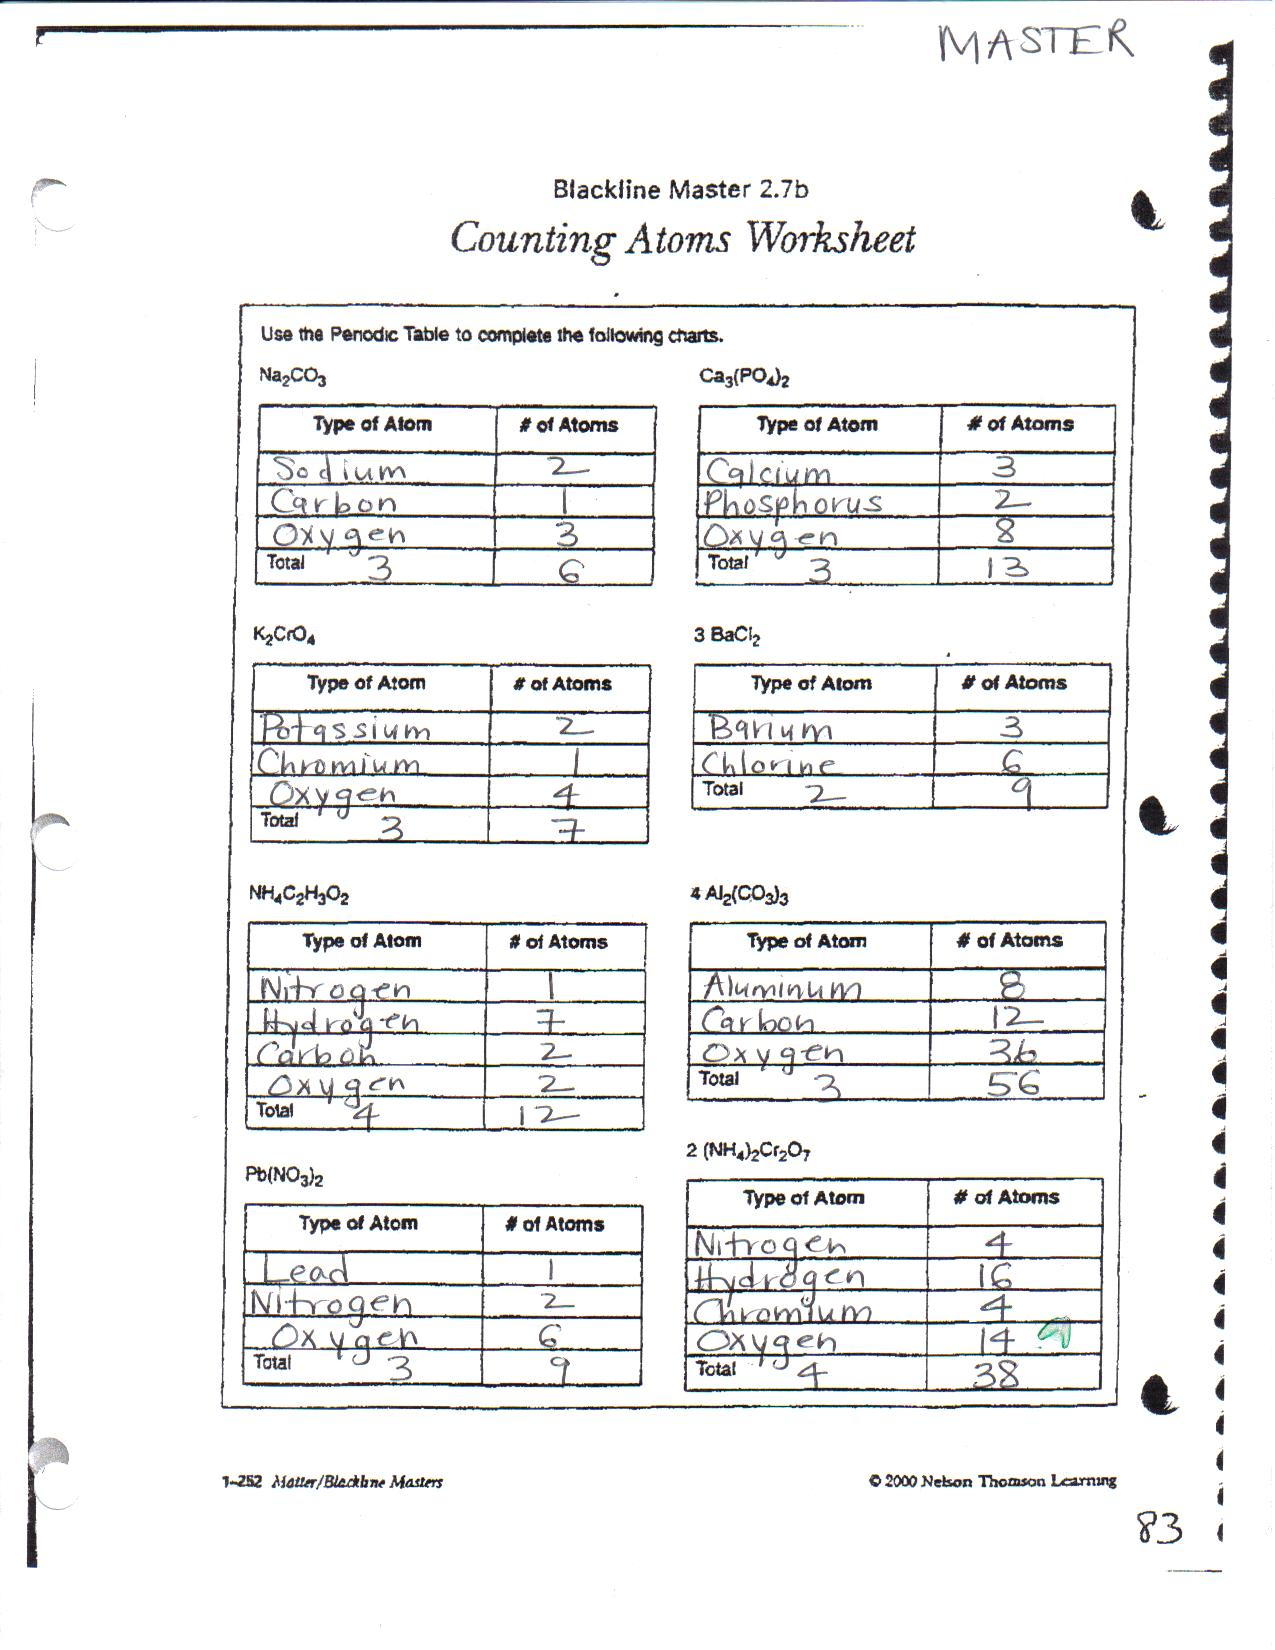 worksheet Counting Atoms Worksheet Grade 9 toxic science worksheet counting atoms